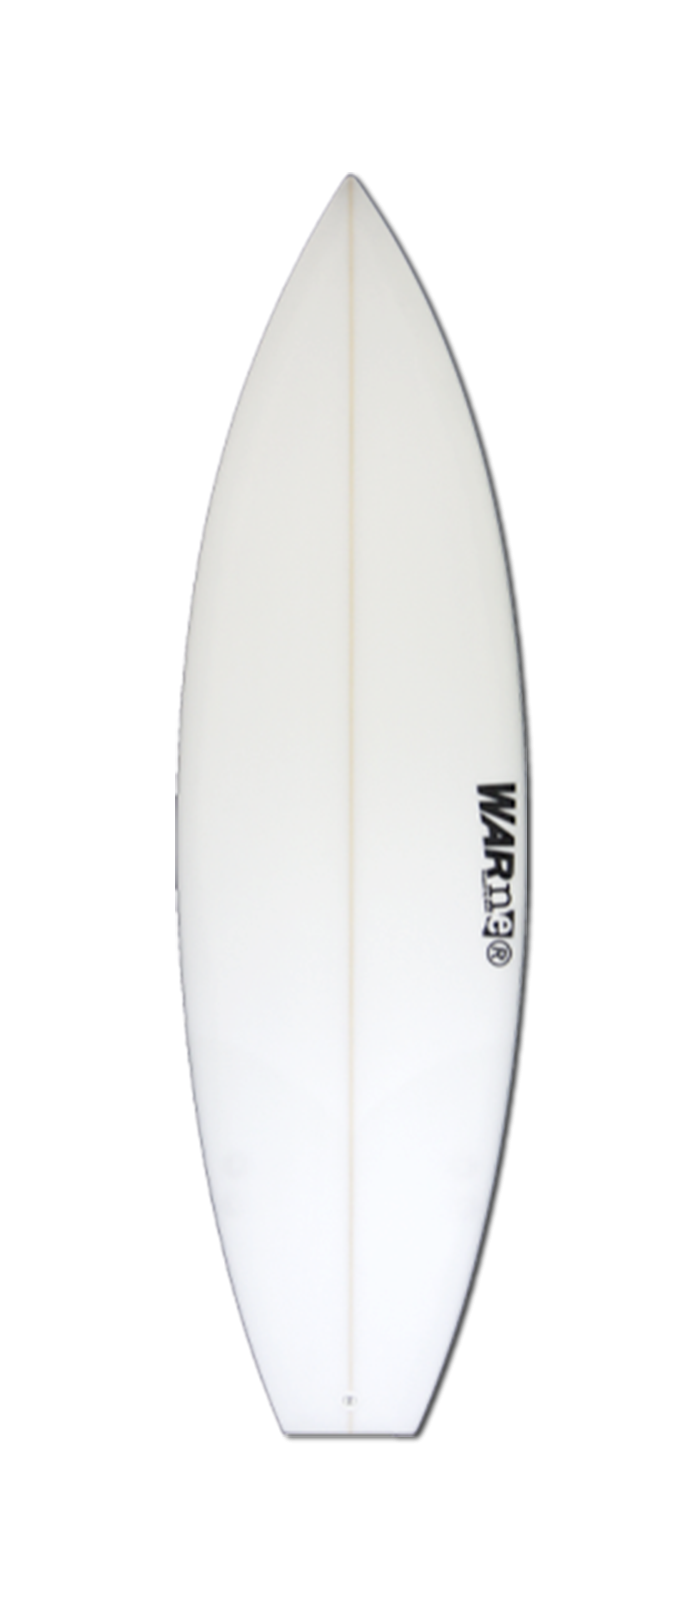 EVIL TWIN surfboard model